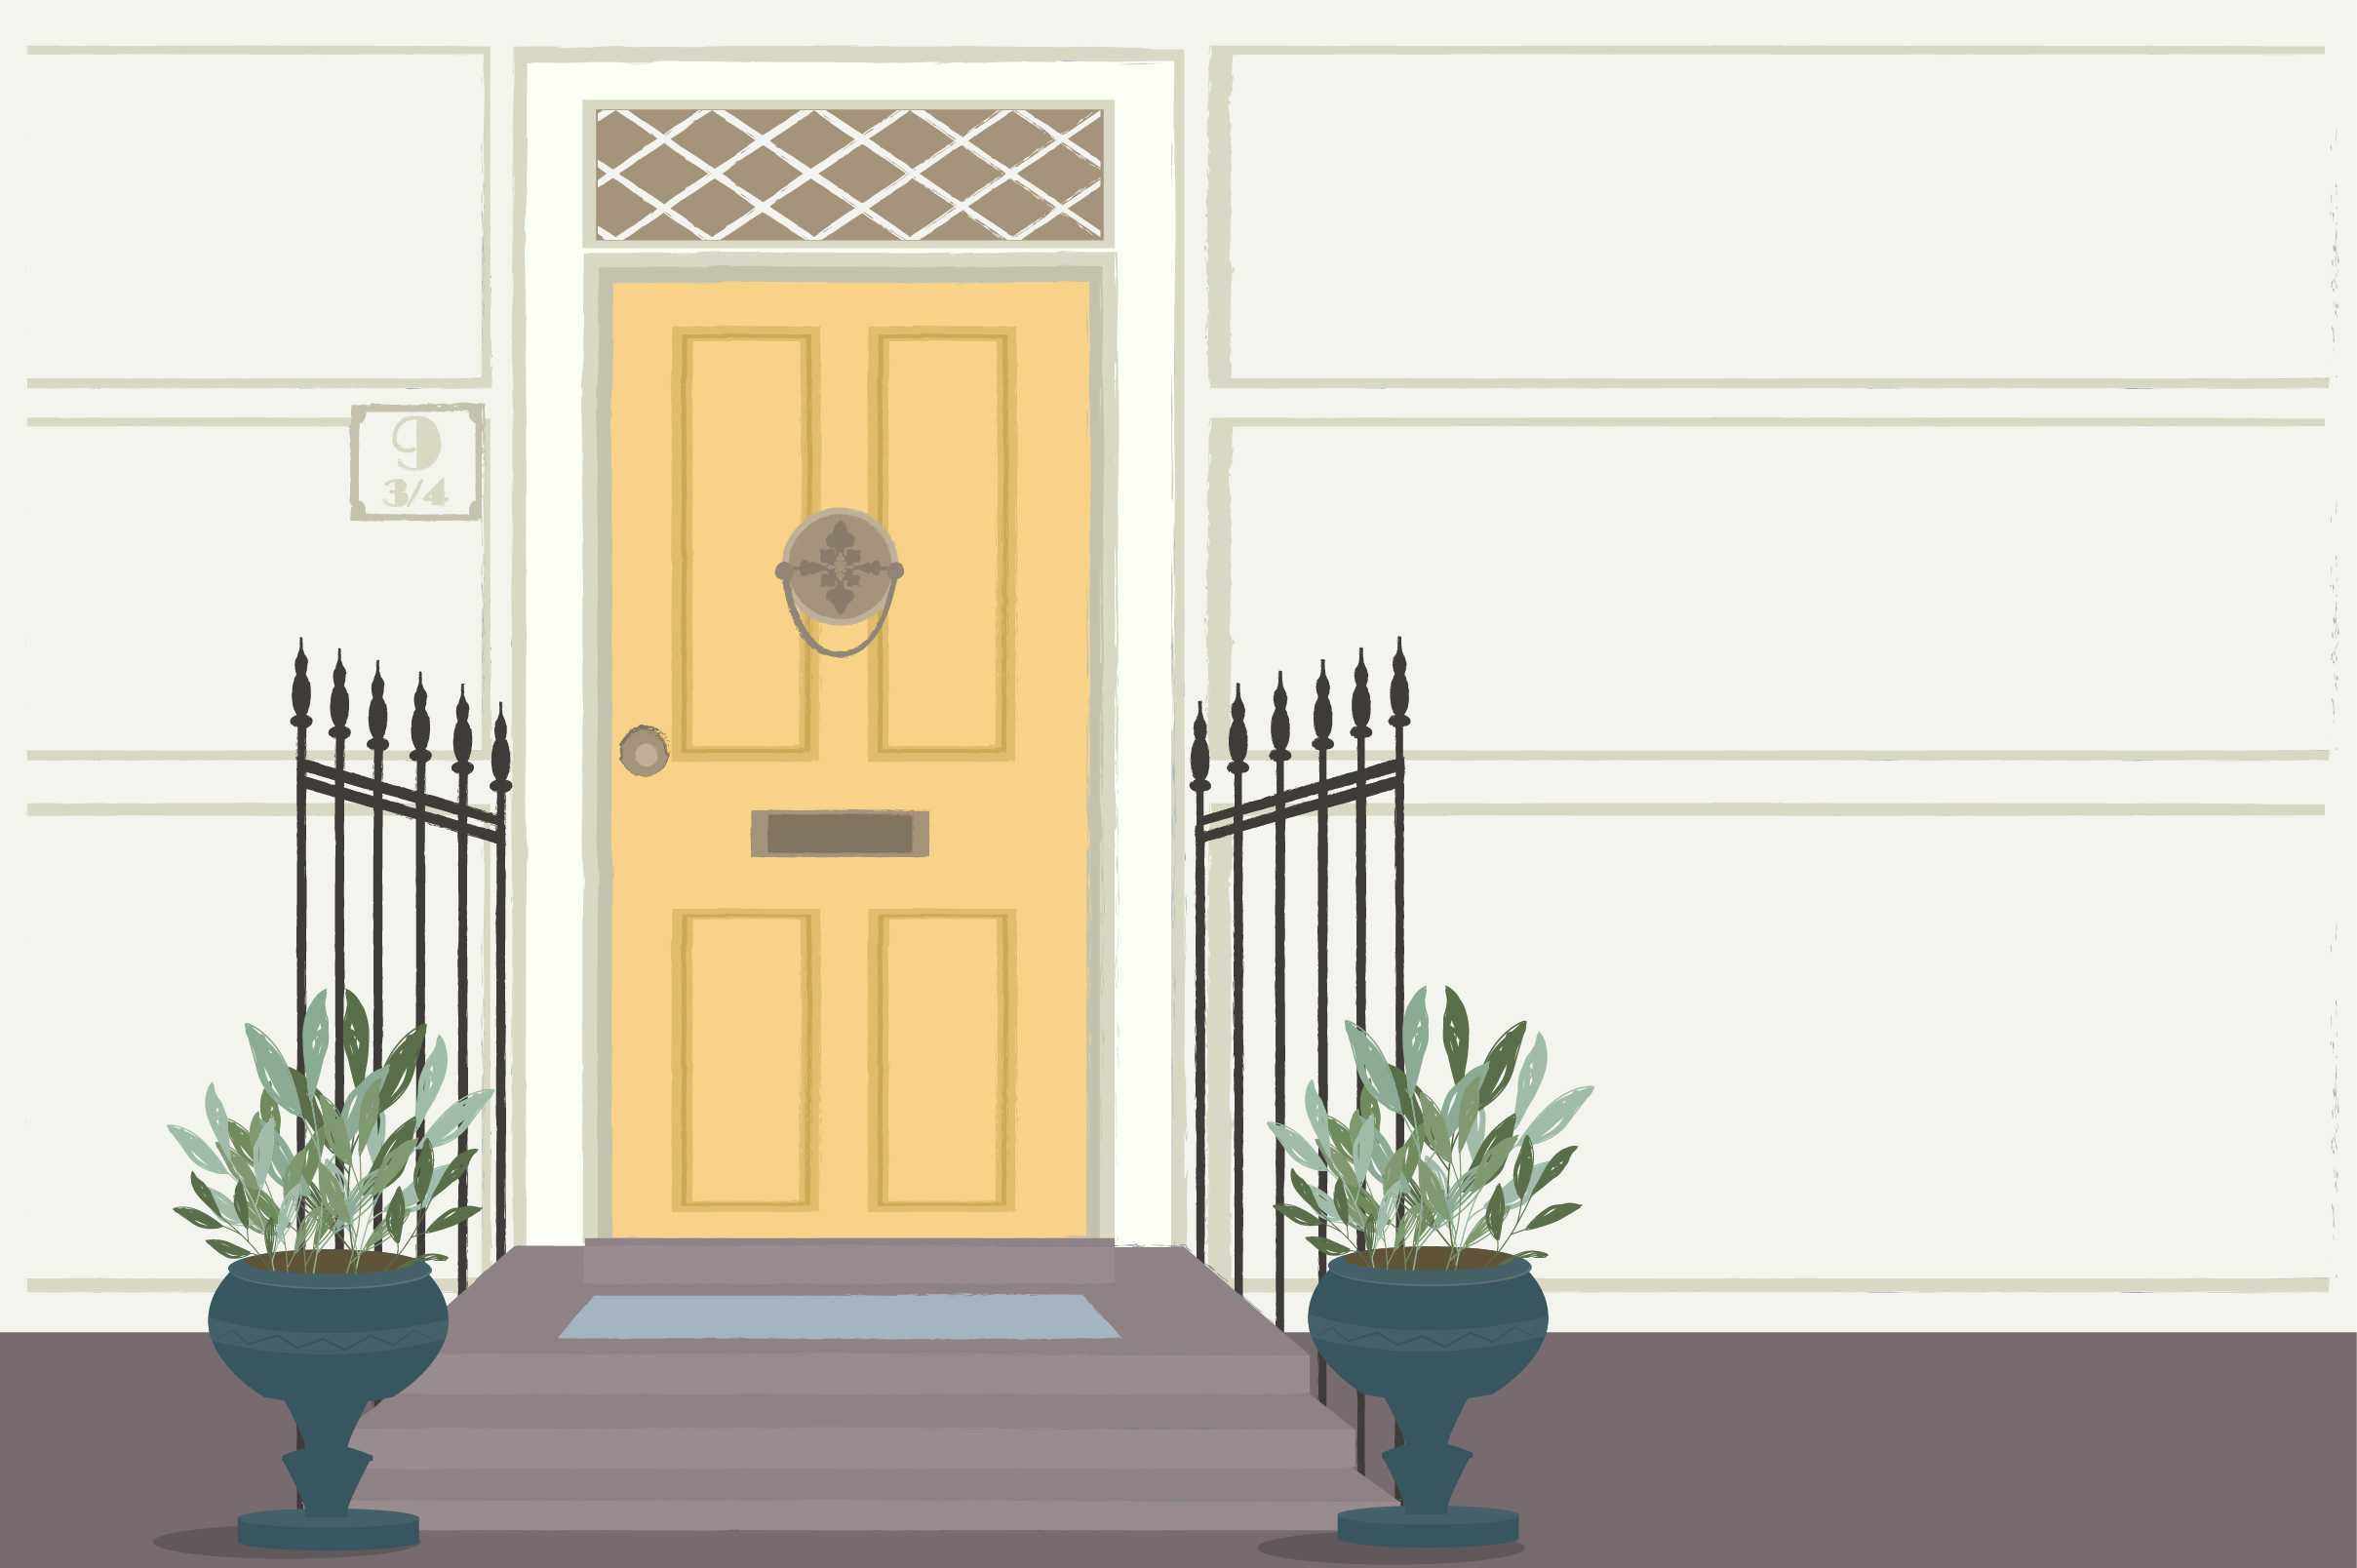 Doors design collection example image 12